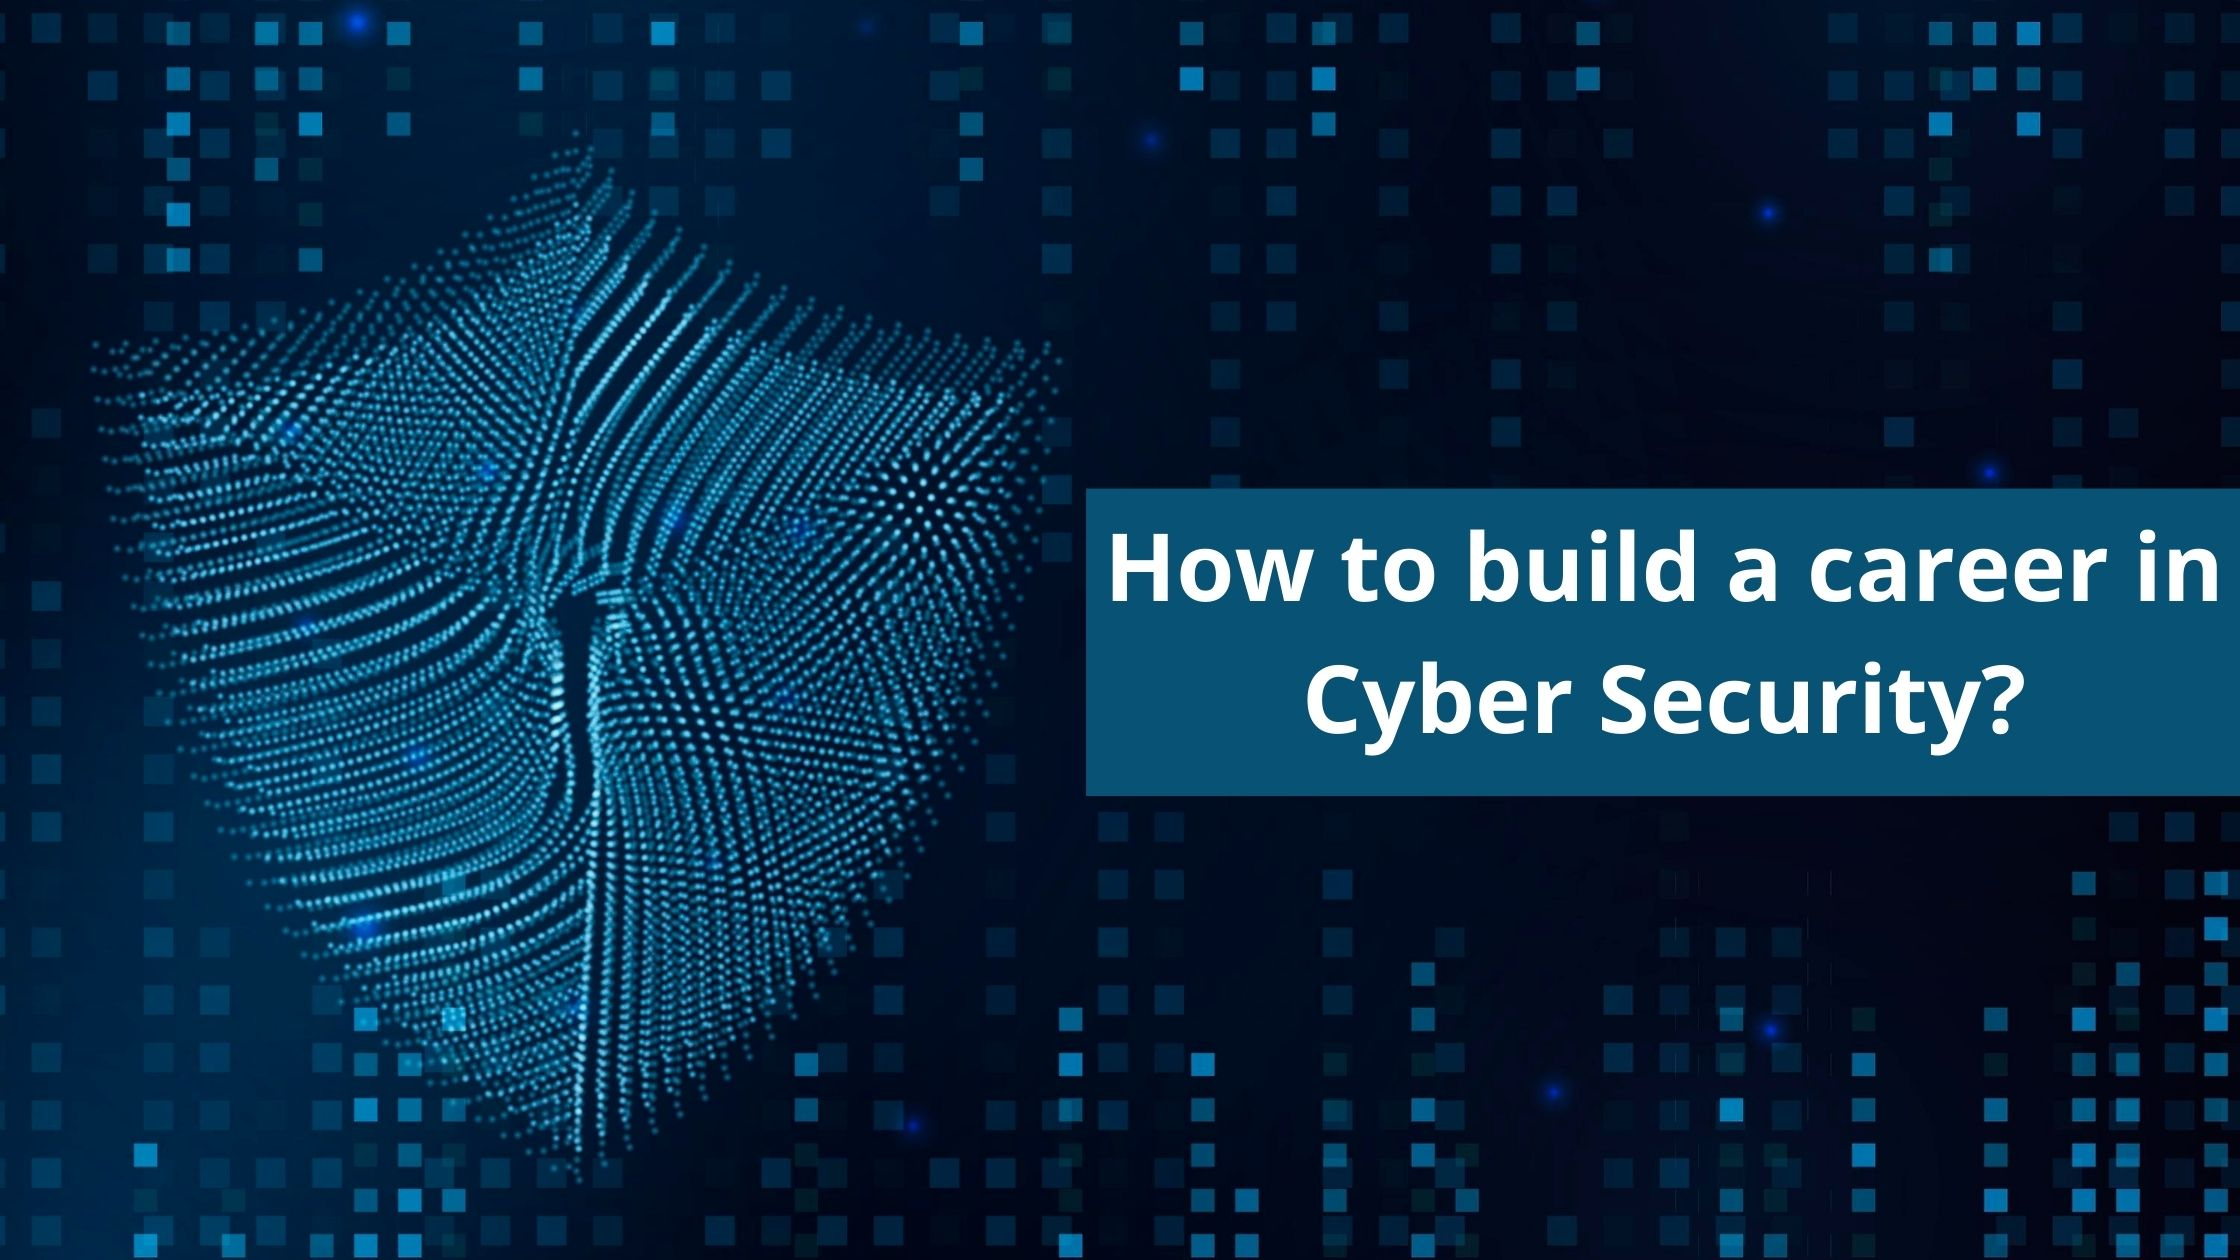 img-how-to-build-a-career-in-cyber-security.jpg